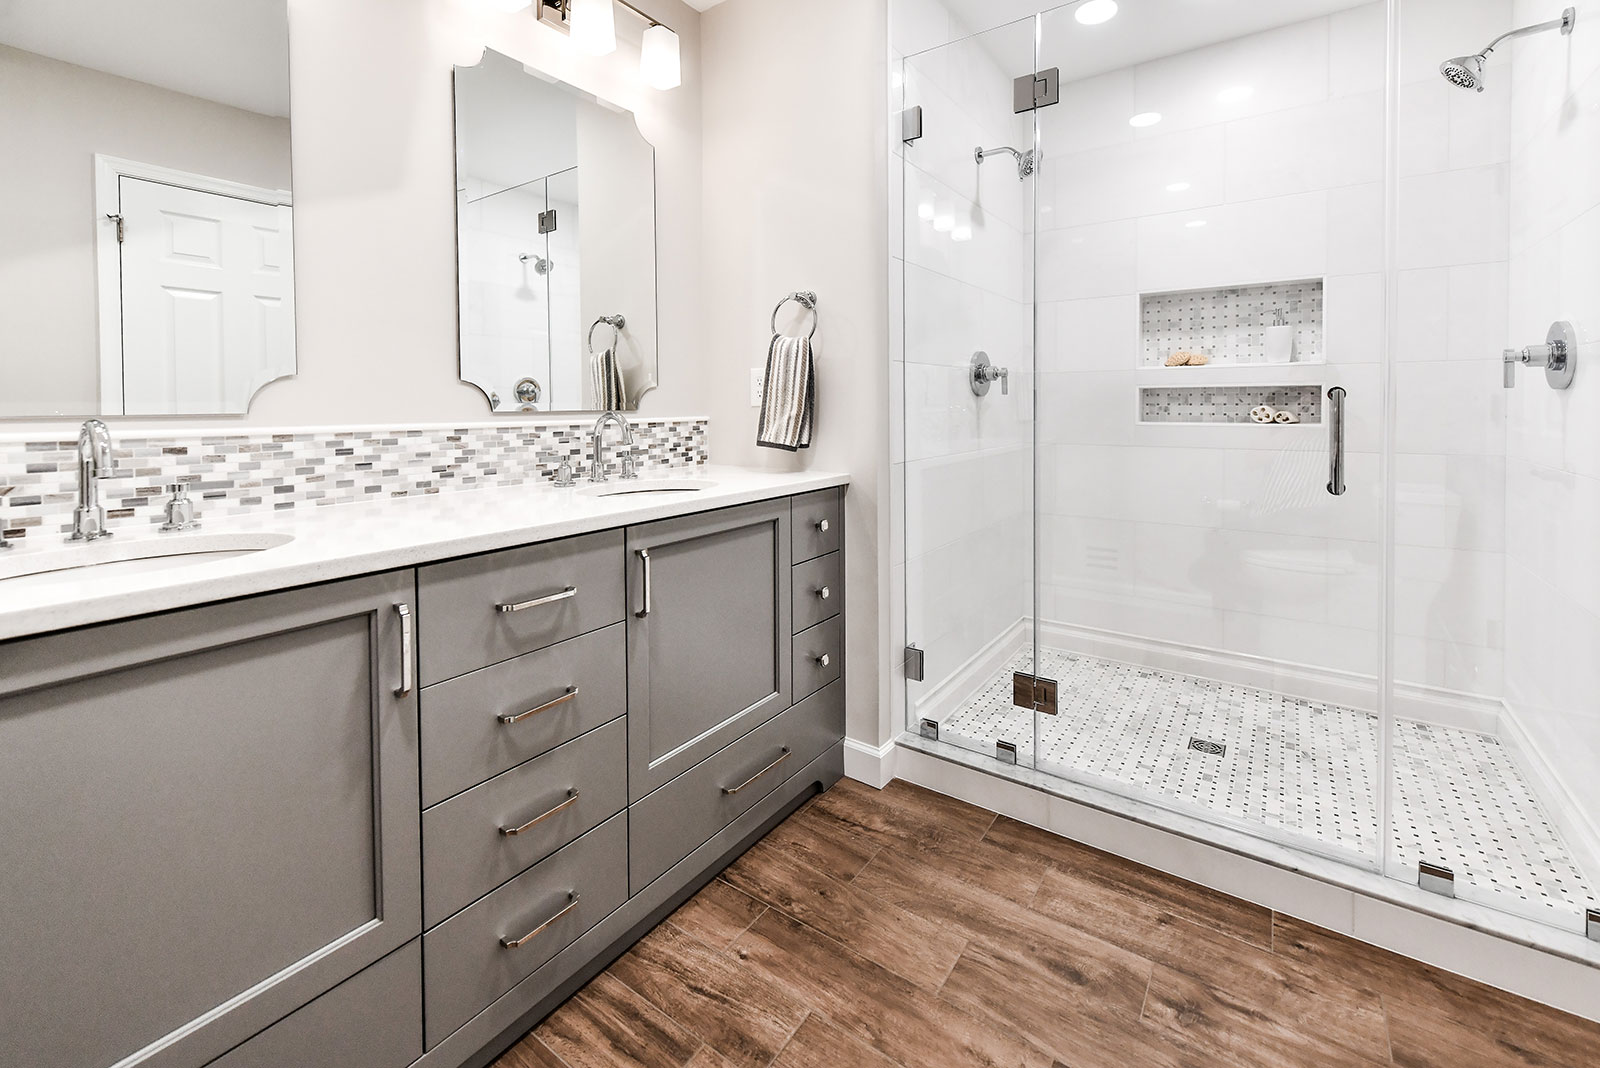 Reno Of The Month Three Things Not To Do In Your Bathroom Remodel Reston Now